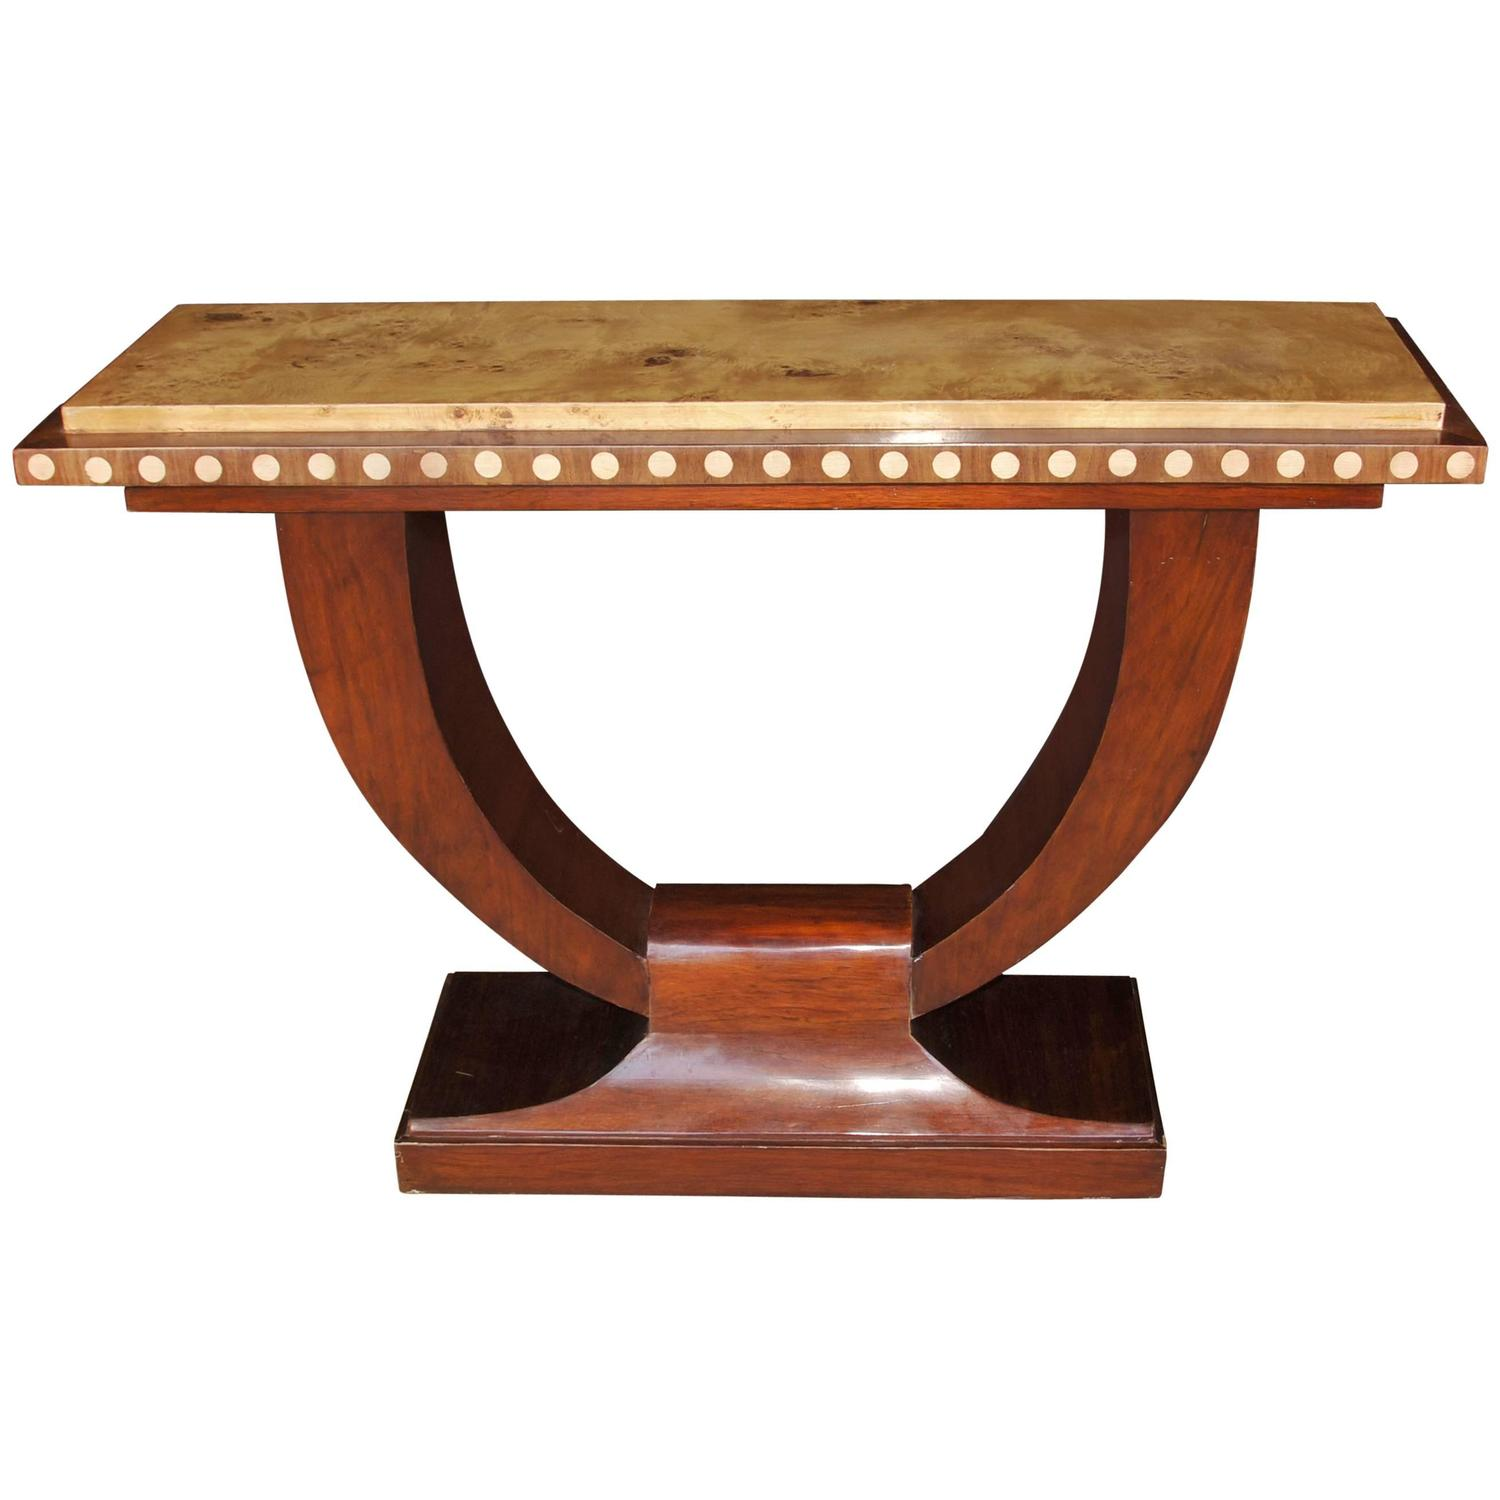 Art Deco Style U Console Table Hall Tables Interiors at 1stdibs